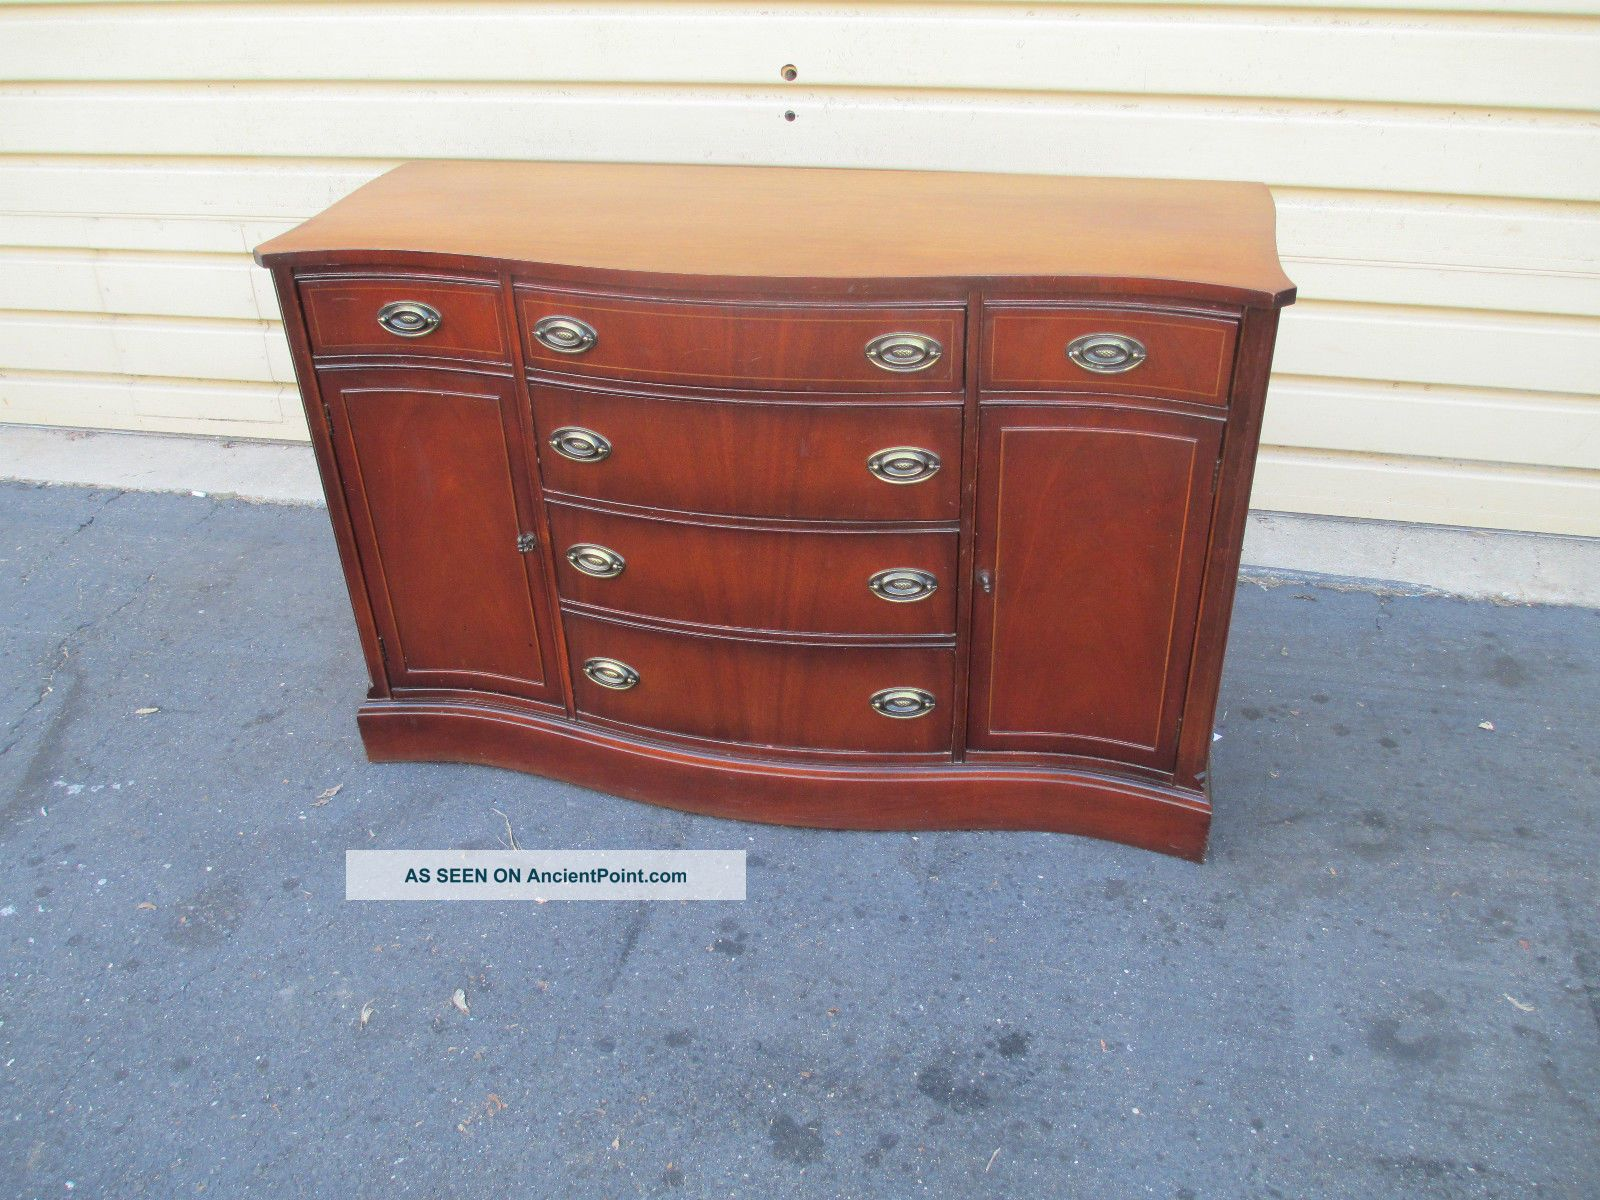 52876 Bassett Buffet Sideboard Server 1900-1950 photo